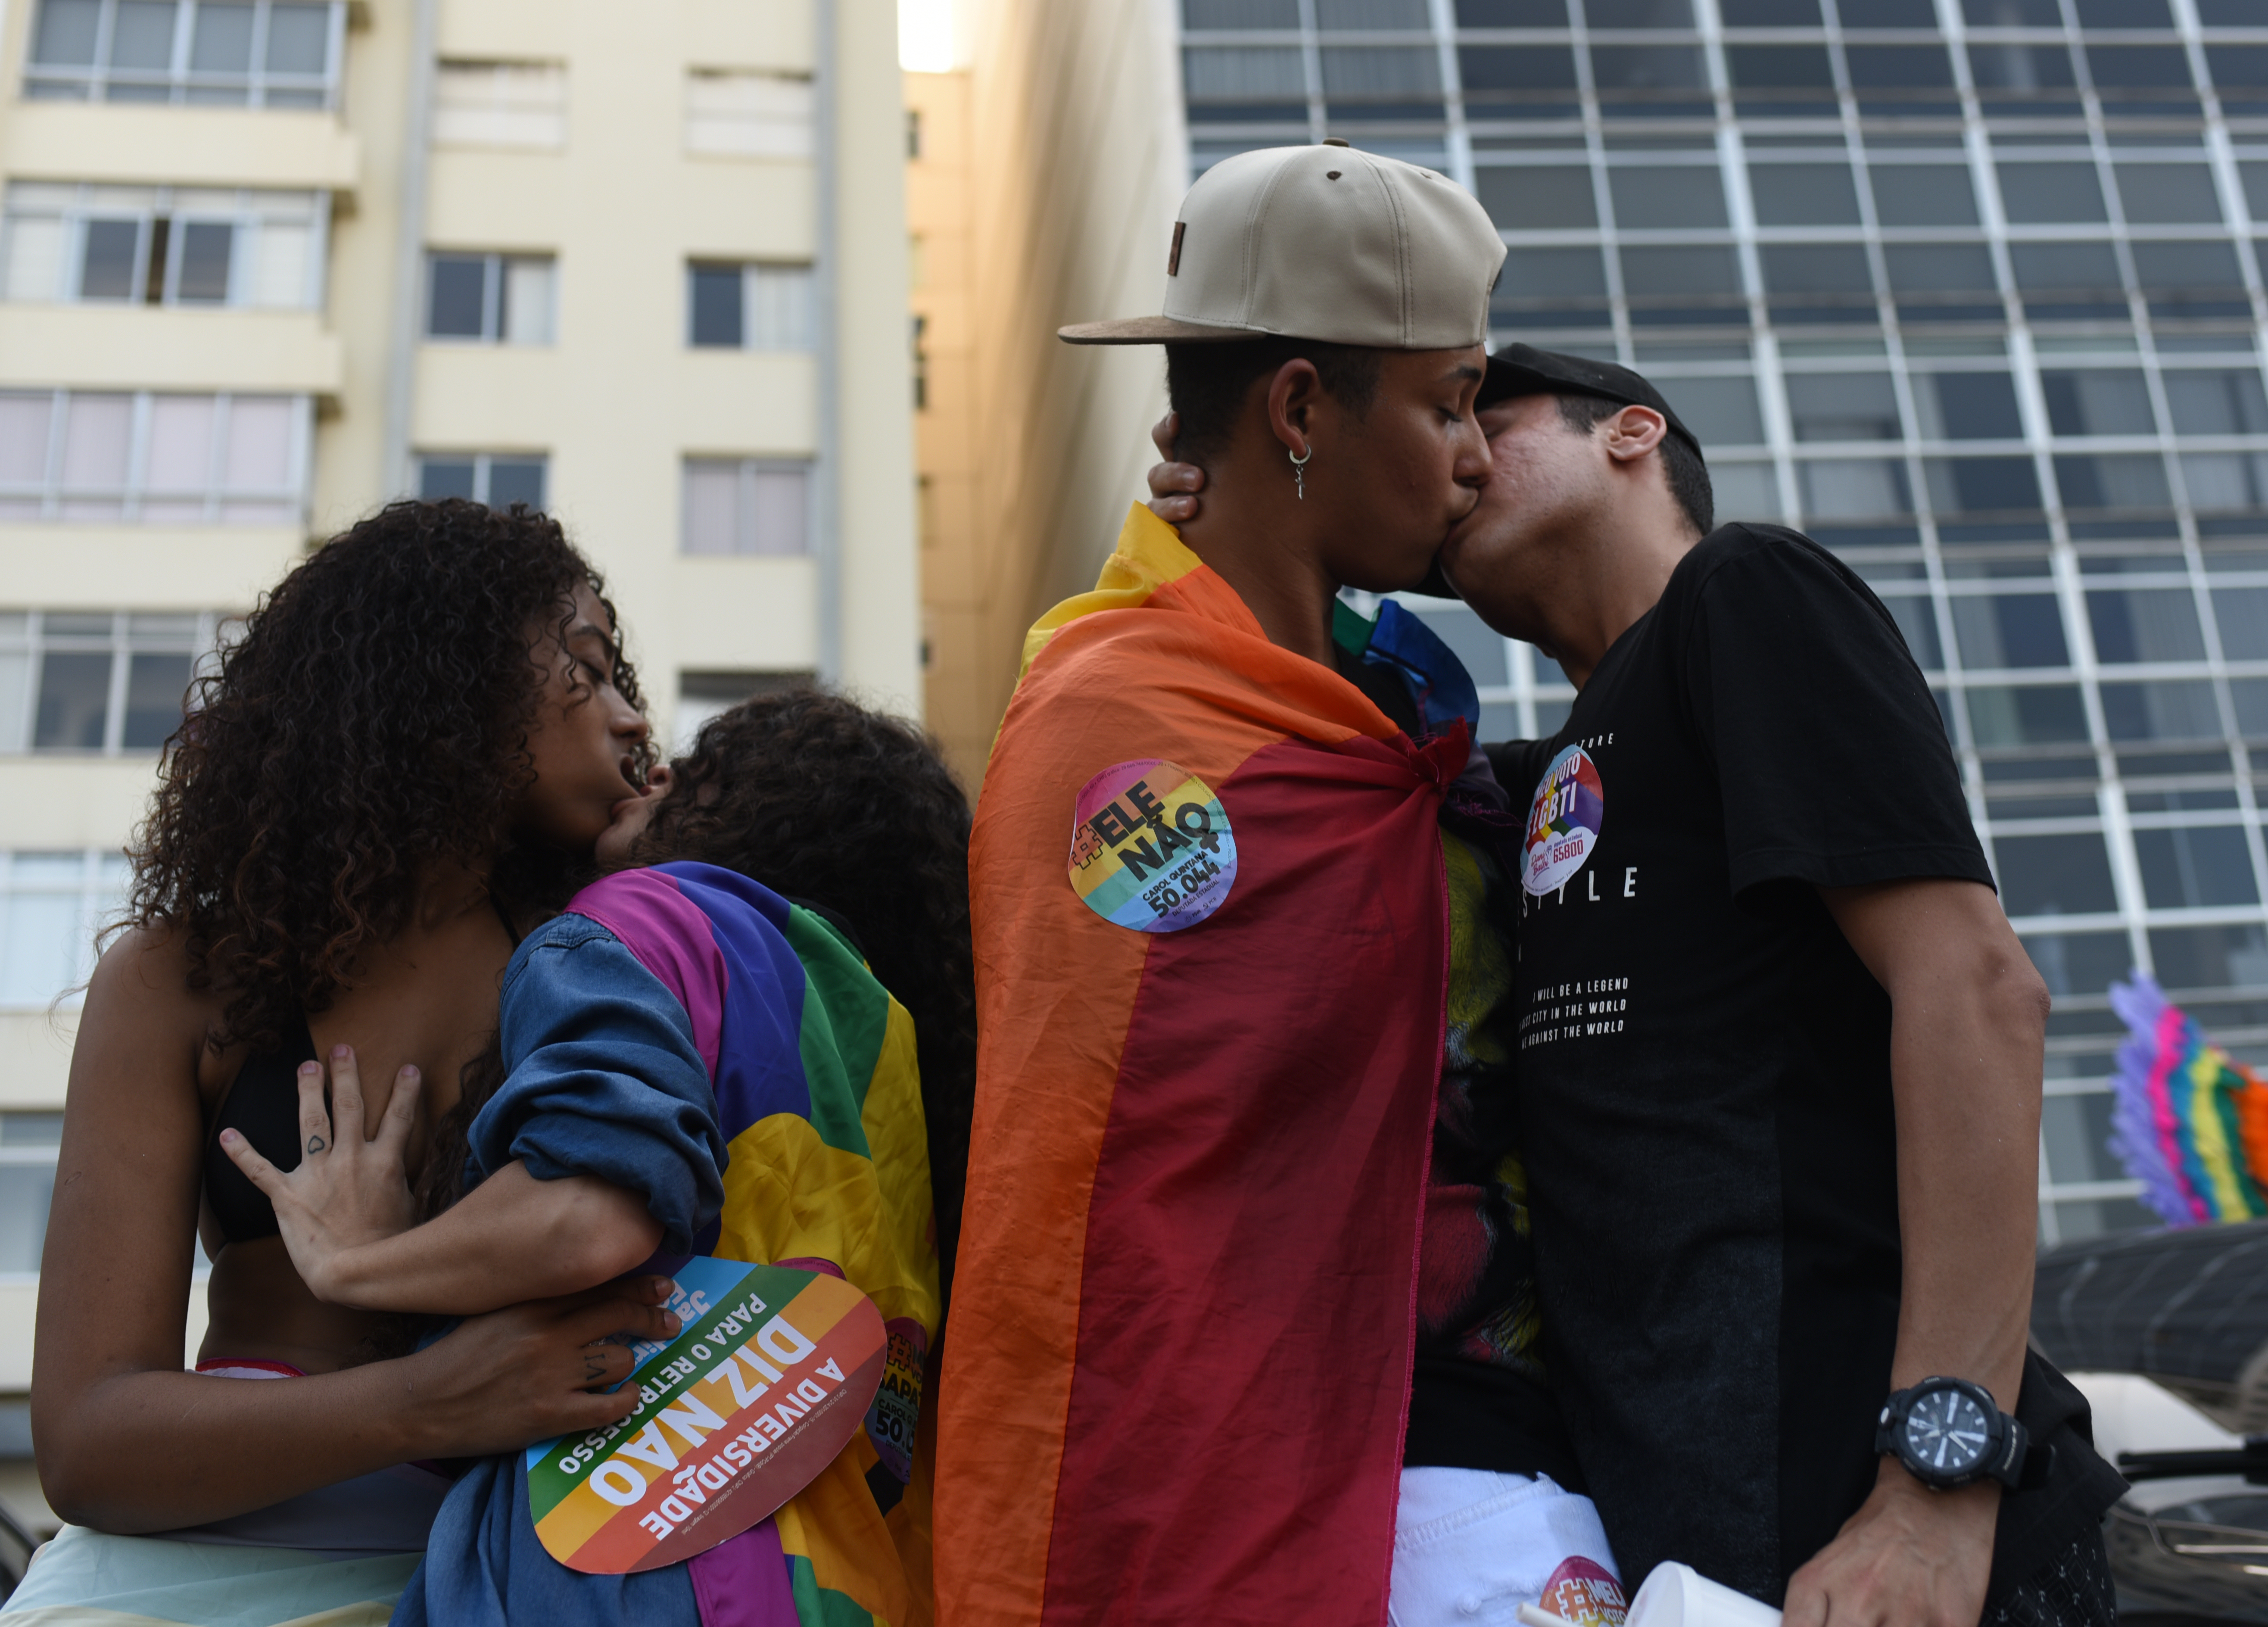 Brazil has voted to make homophobia and transphobia crimes. Credit: PA